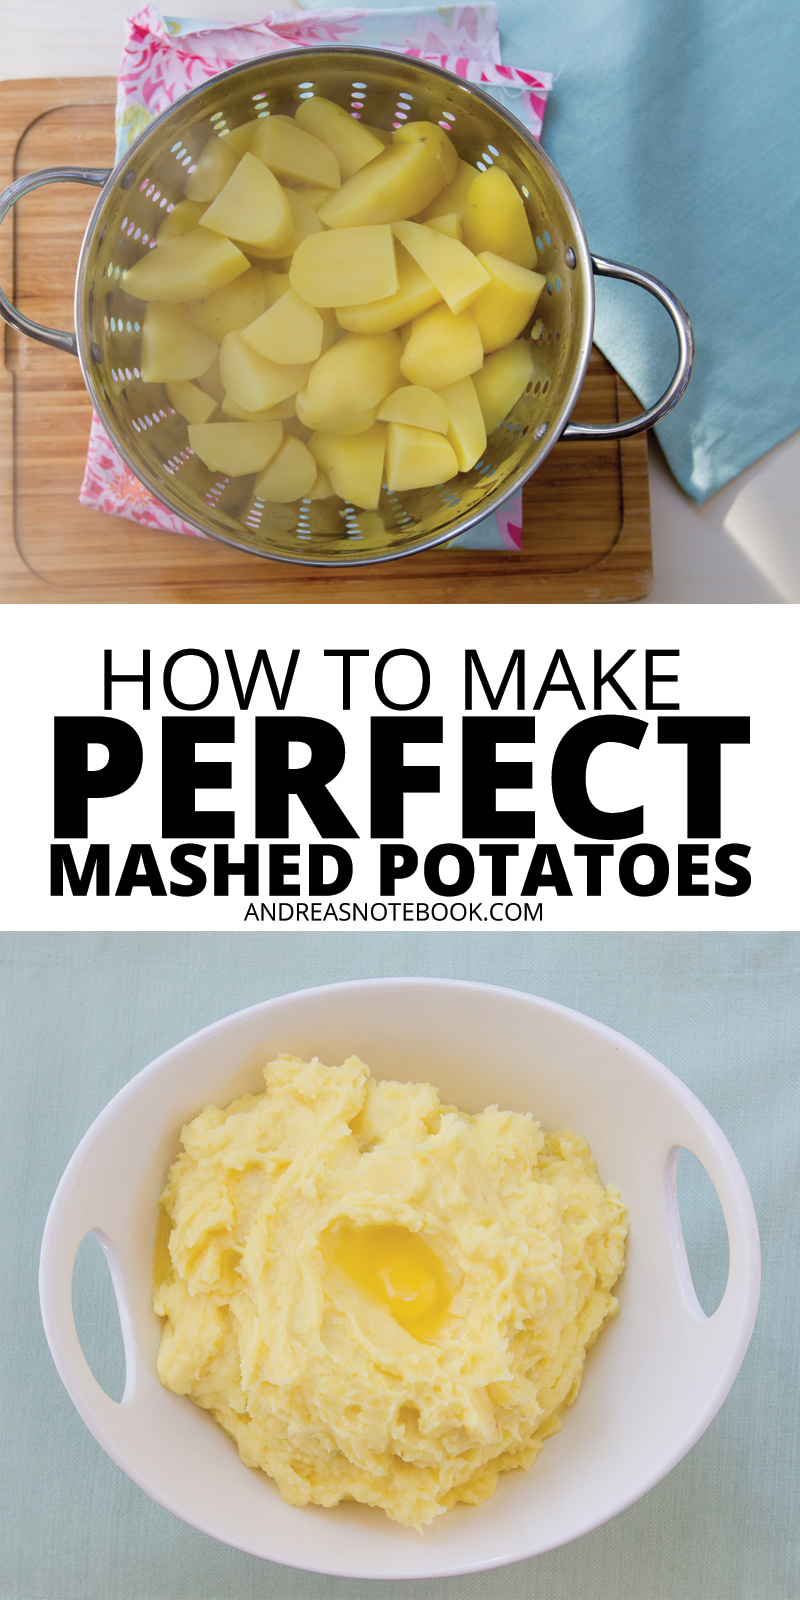 How to make perfect mashed potatoes every time